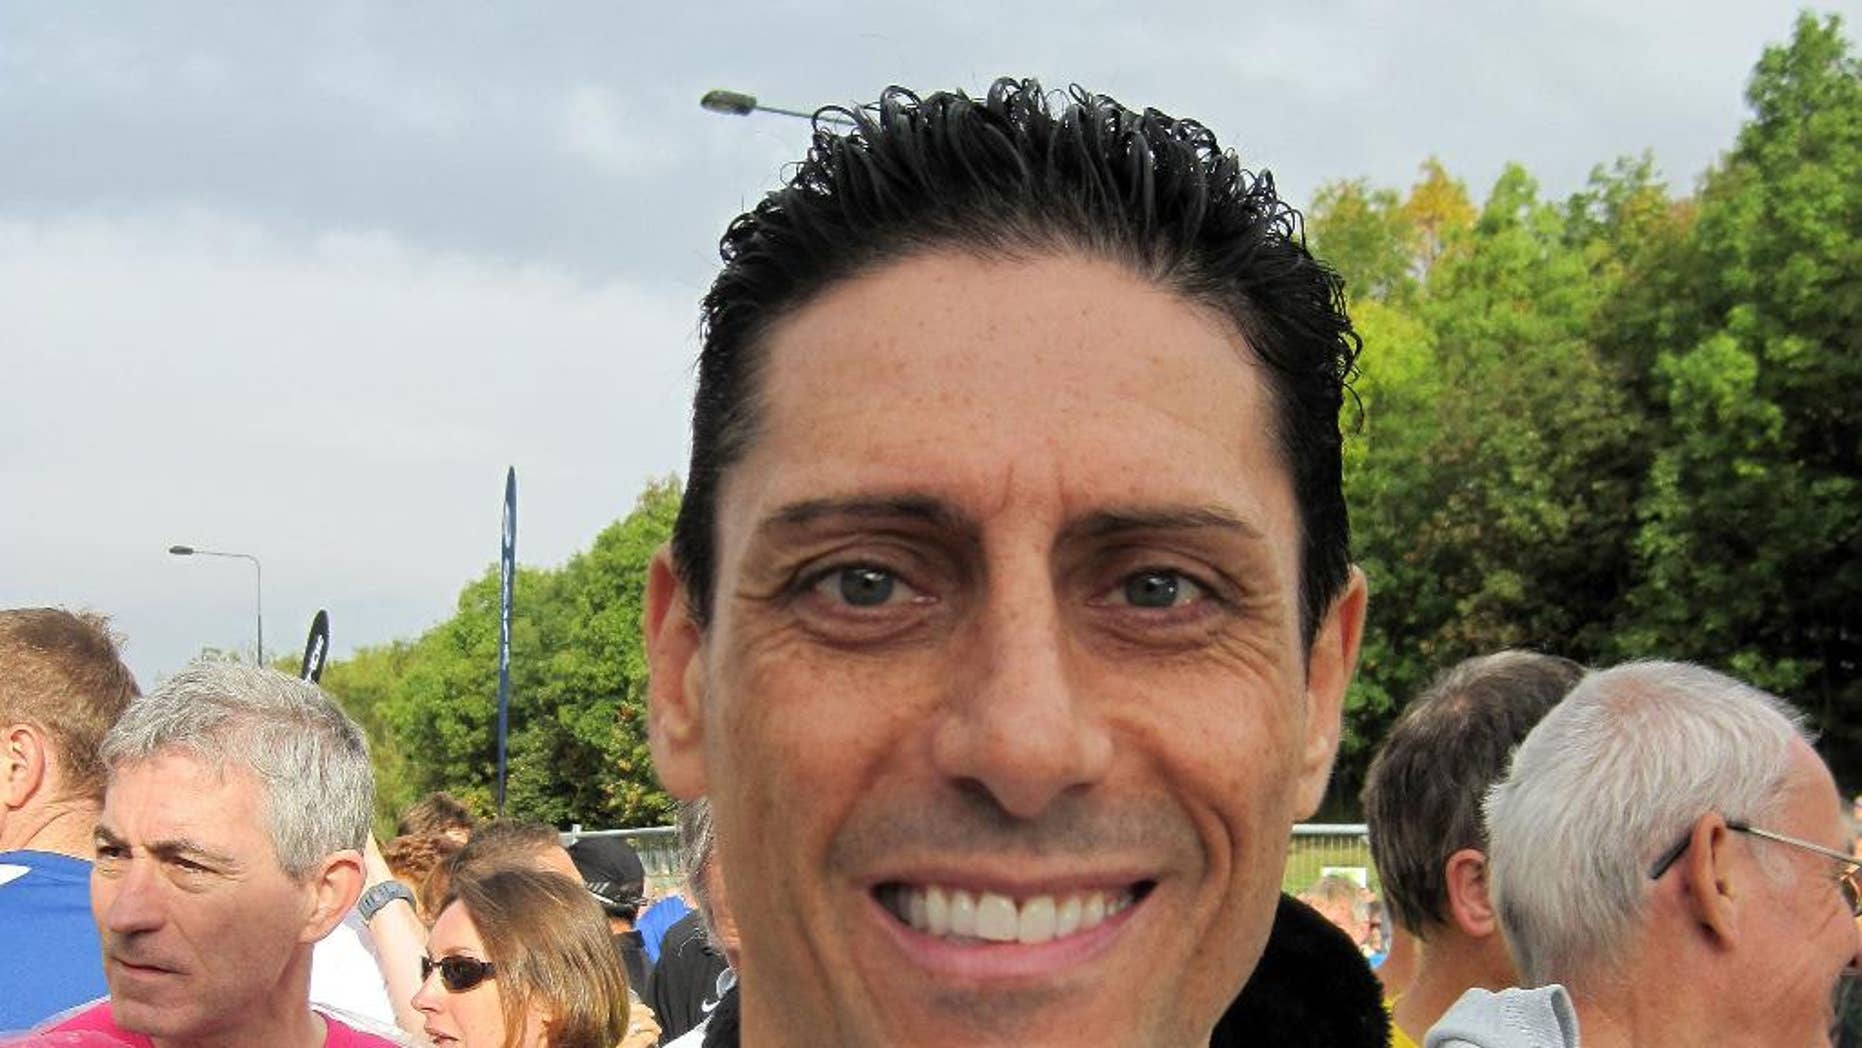 "This is a Sept. 18, 2011 file photo of CJ de Mooi. Quiz-show champion CJ de Mooiwho who appeared on the long-running BBC show ""Eggheads"" has been arrested on suspicion of committing murder in the Netherlands"